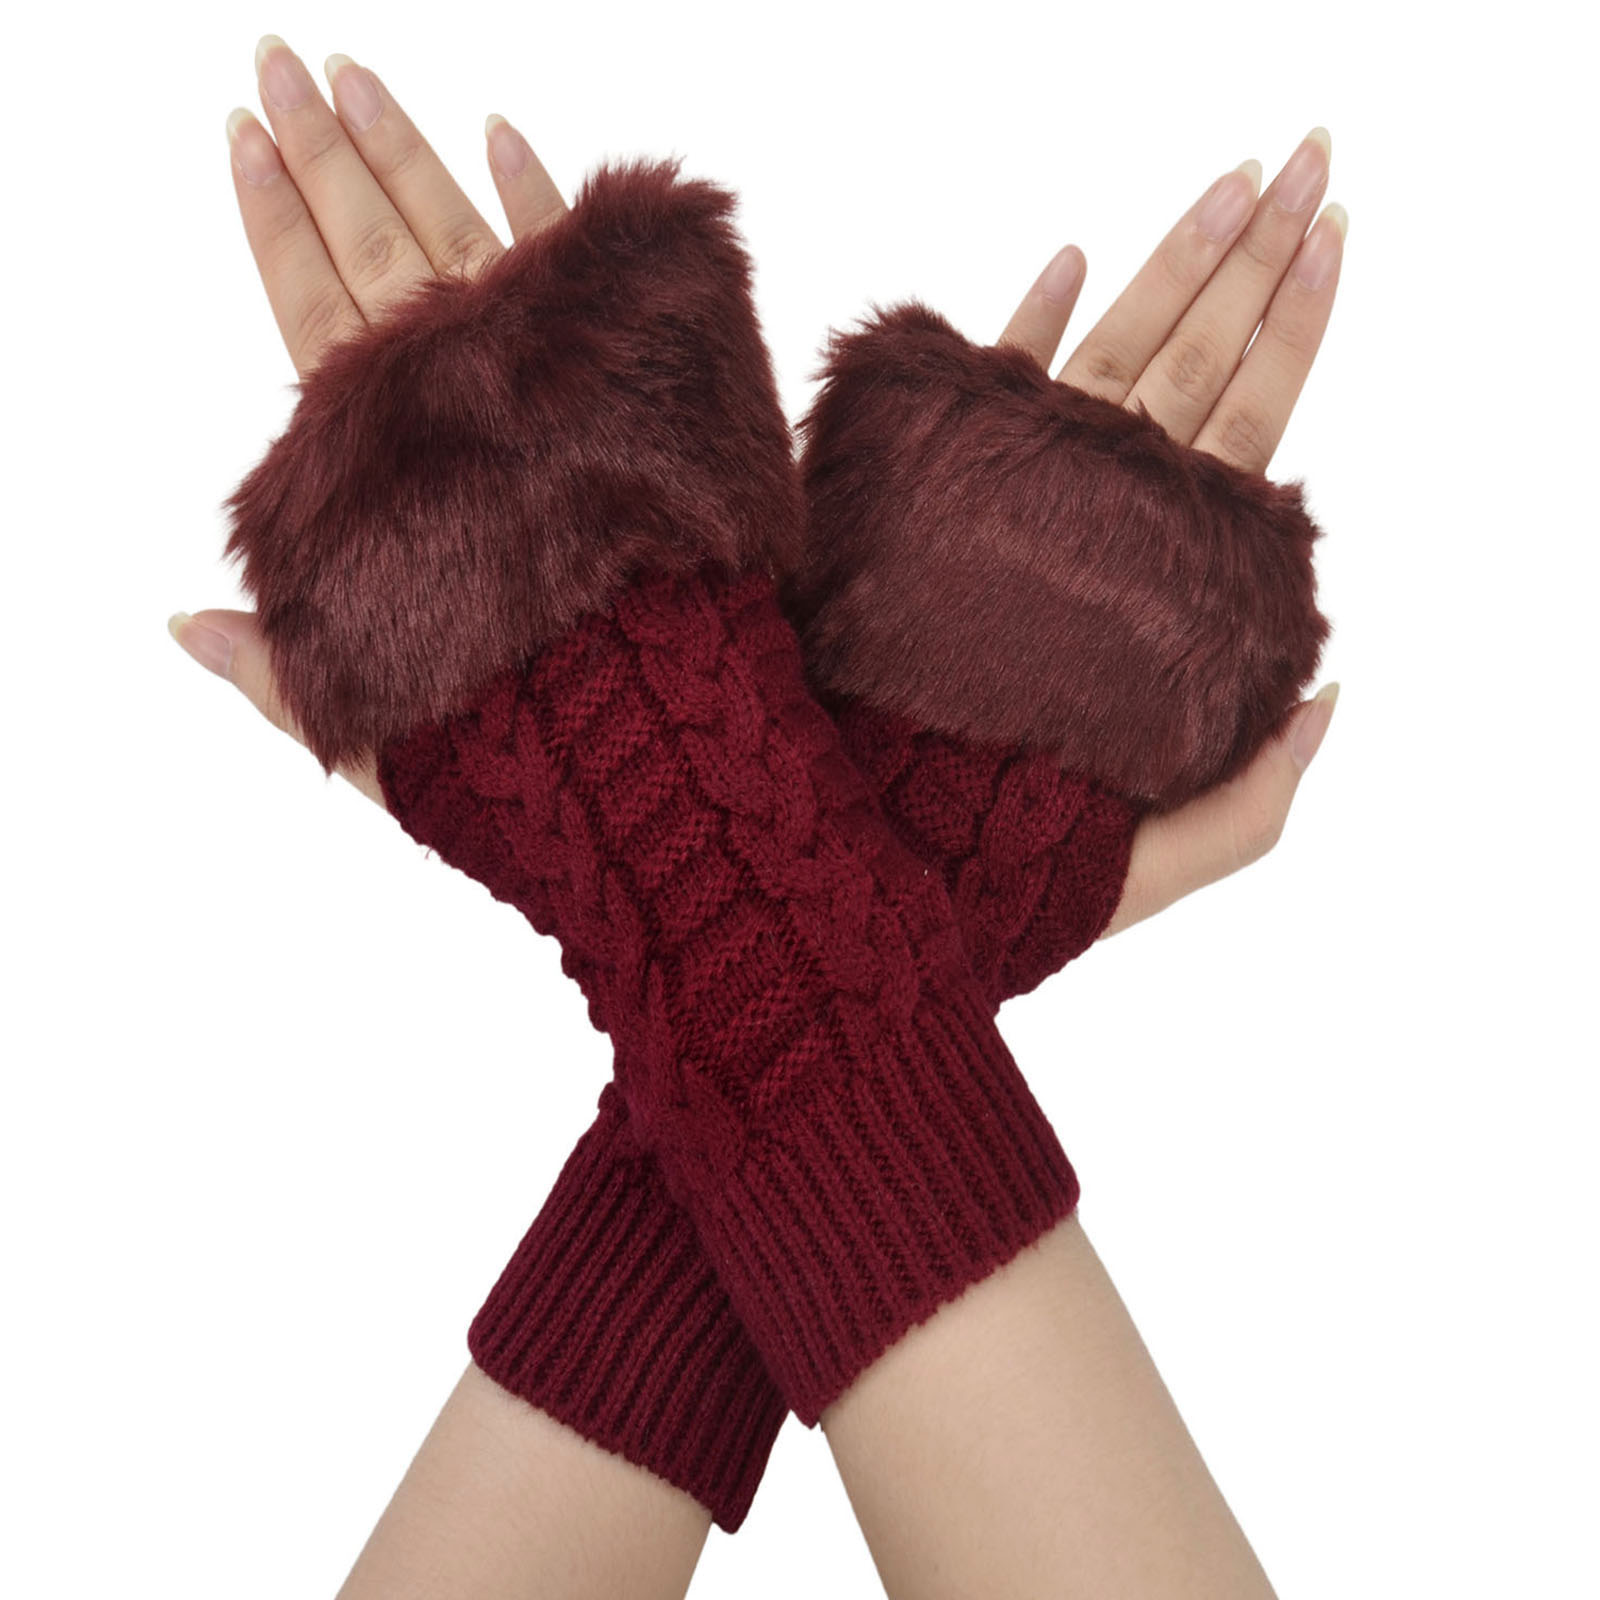 Simplicity Winter Warmer Women Faux Knitted Hand Wrist Fingerless Gloves, Red